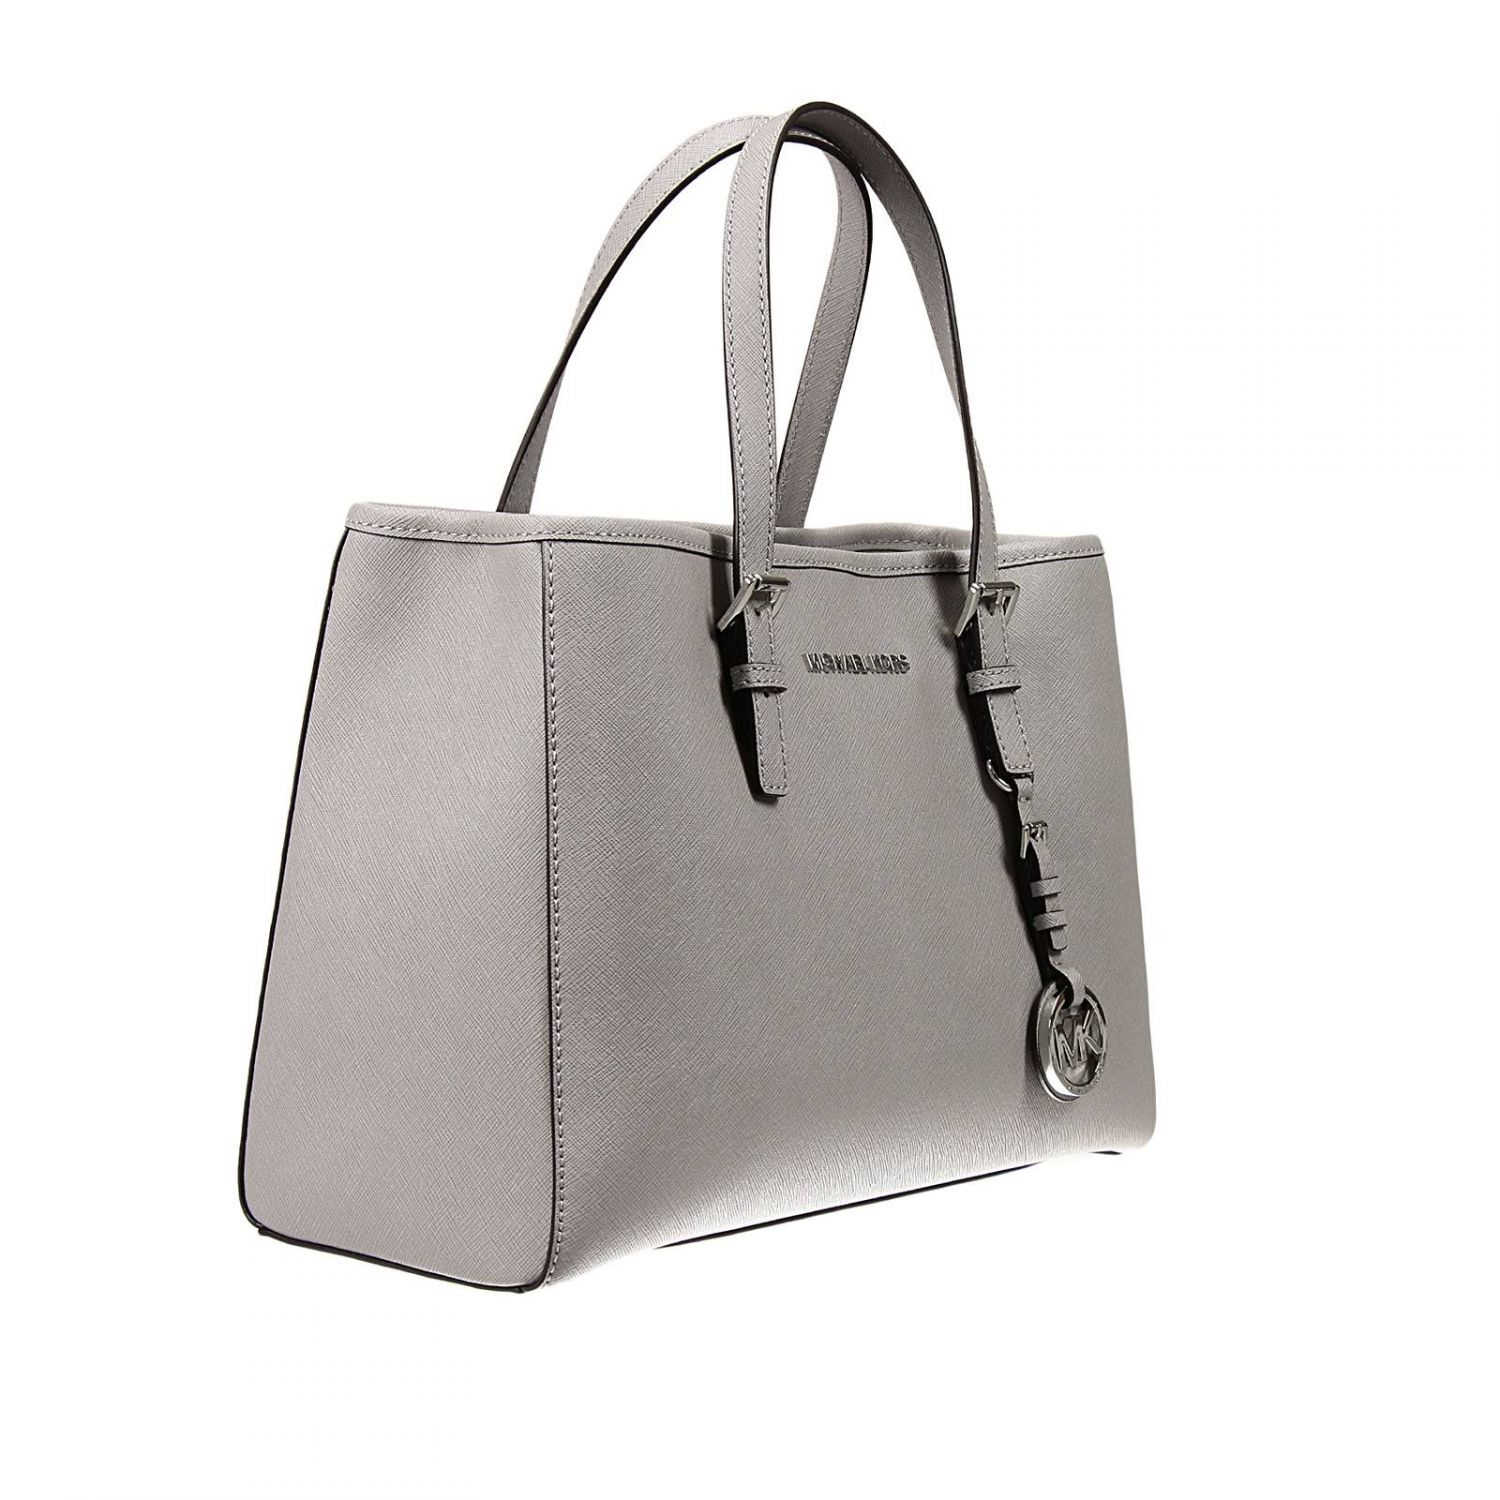 ... amazon lyst michael kors handbag woman in gray 0d752 fe172 ed3cf0ca2d7da